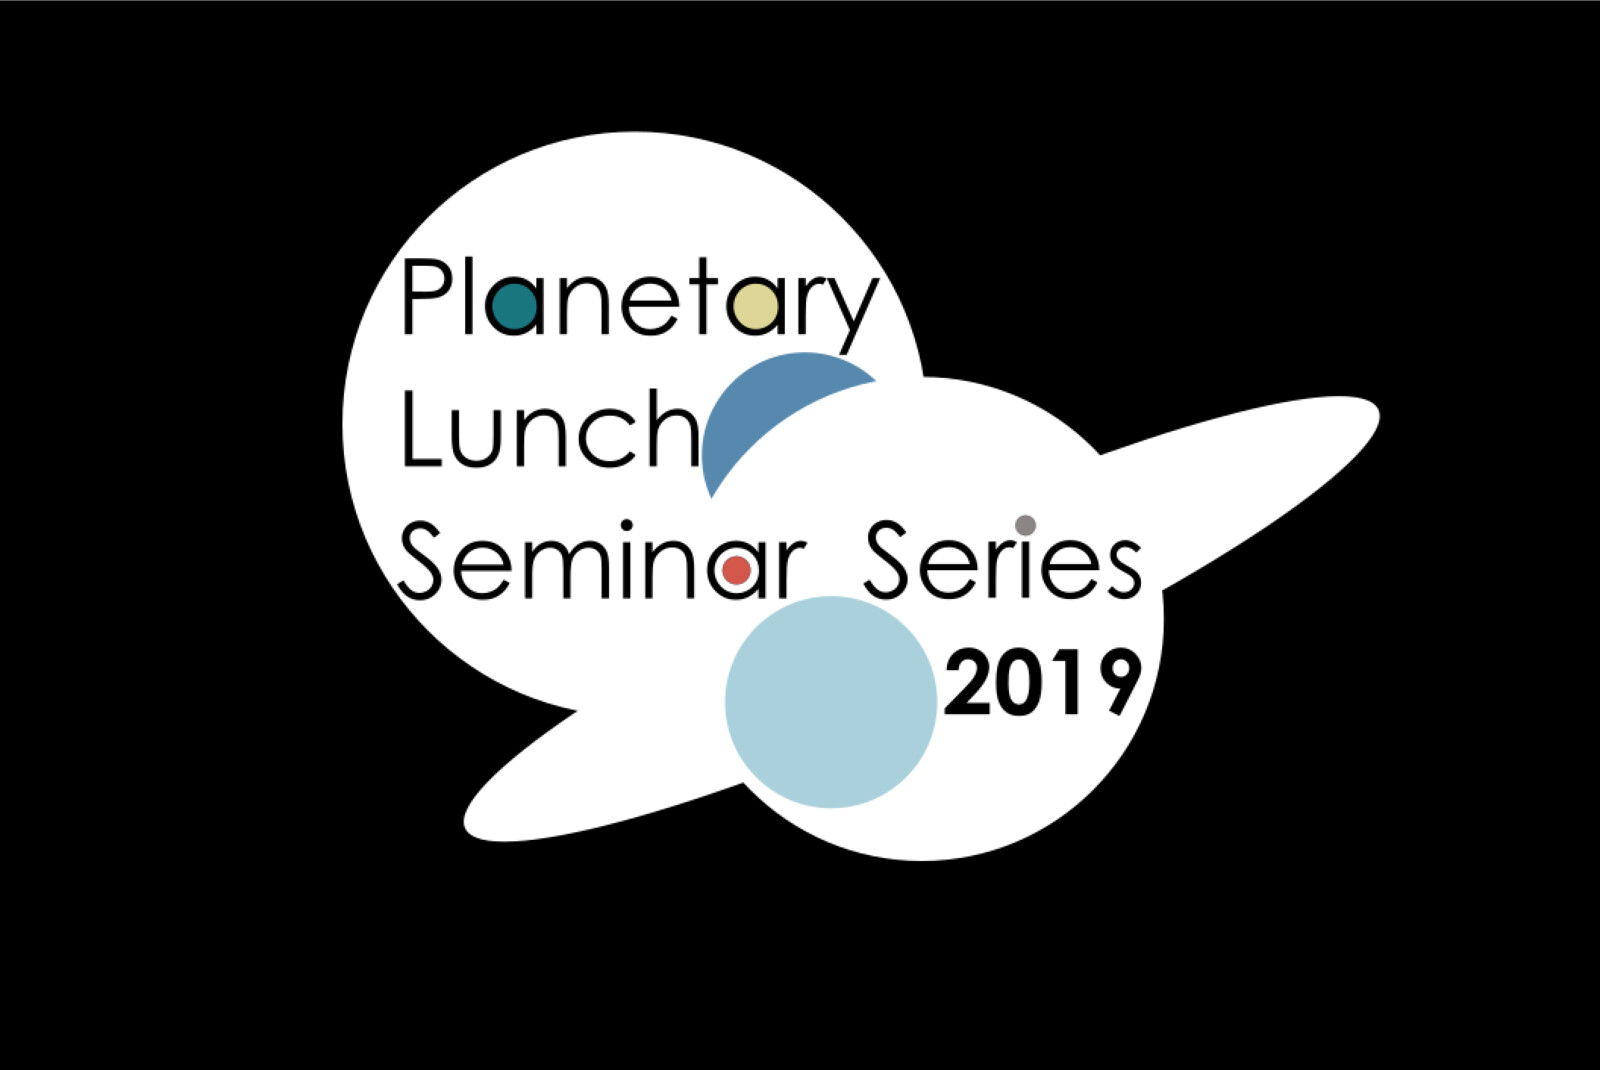 Planetary Lunch